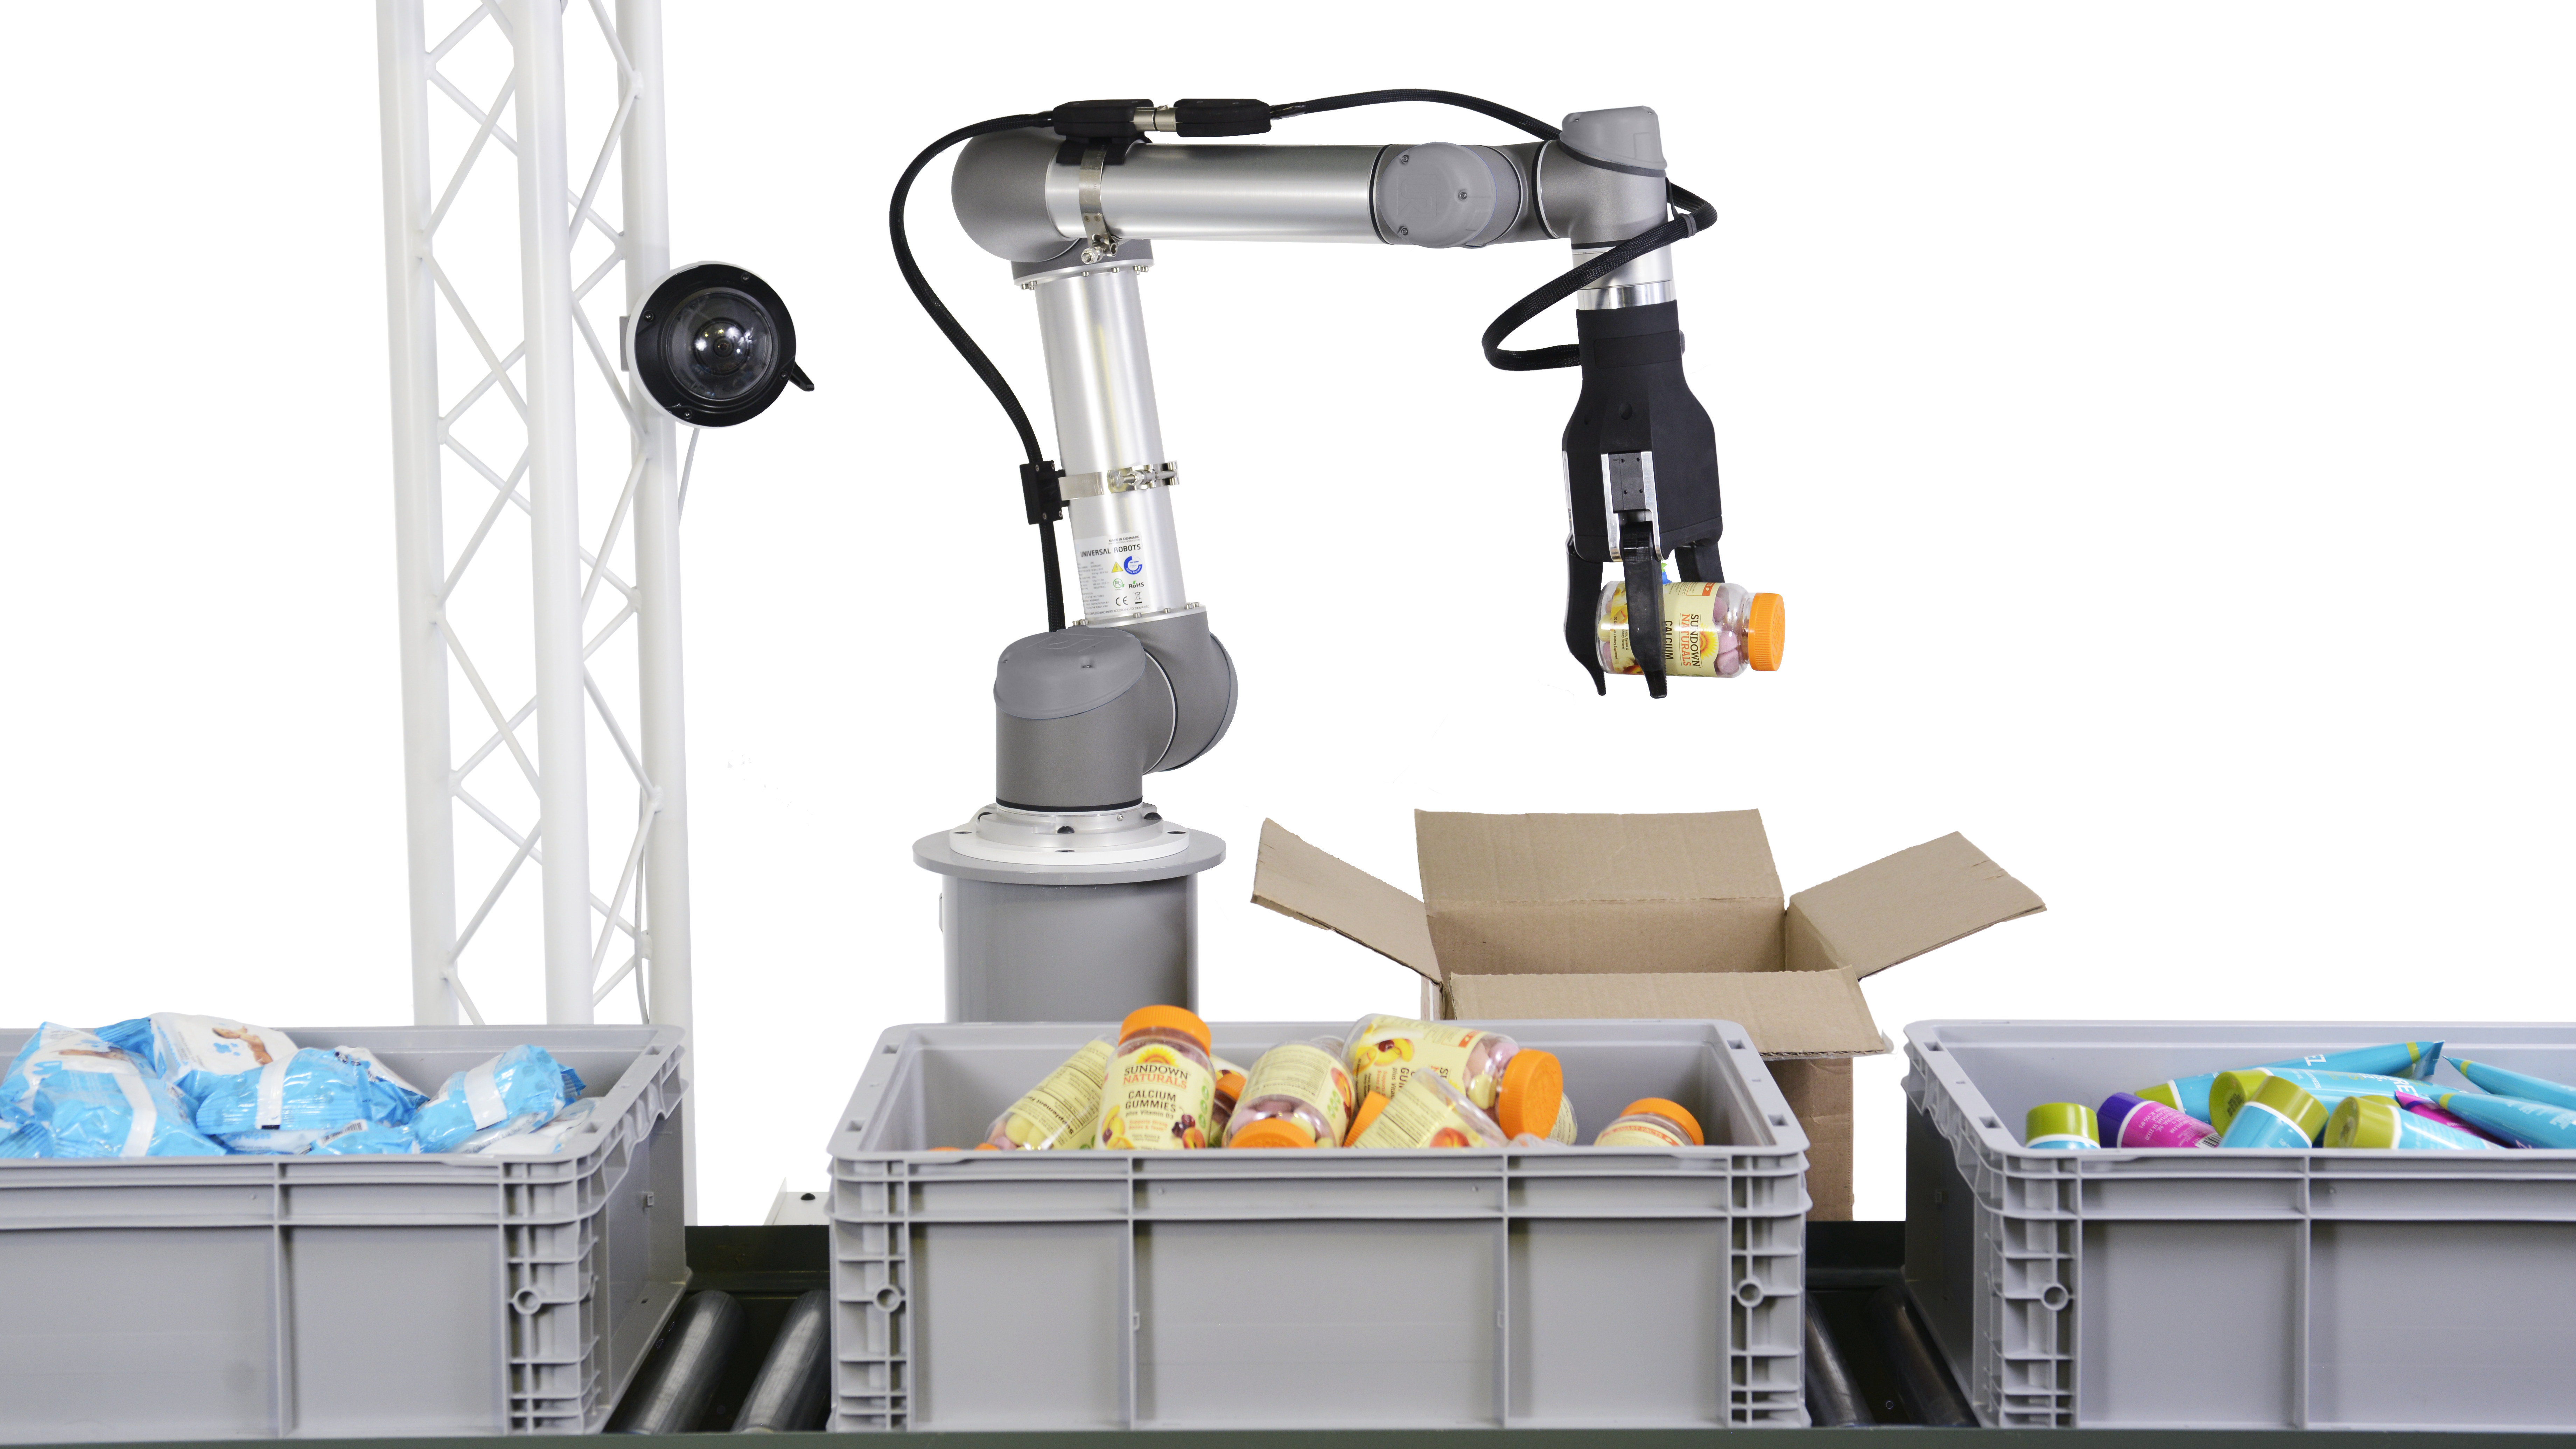 """RightHand robotics' RightPick is at work picking """"thousands of orders"""" in pilot programs at warehouses."""